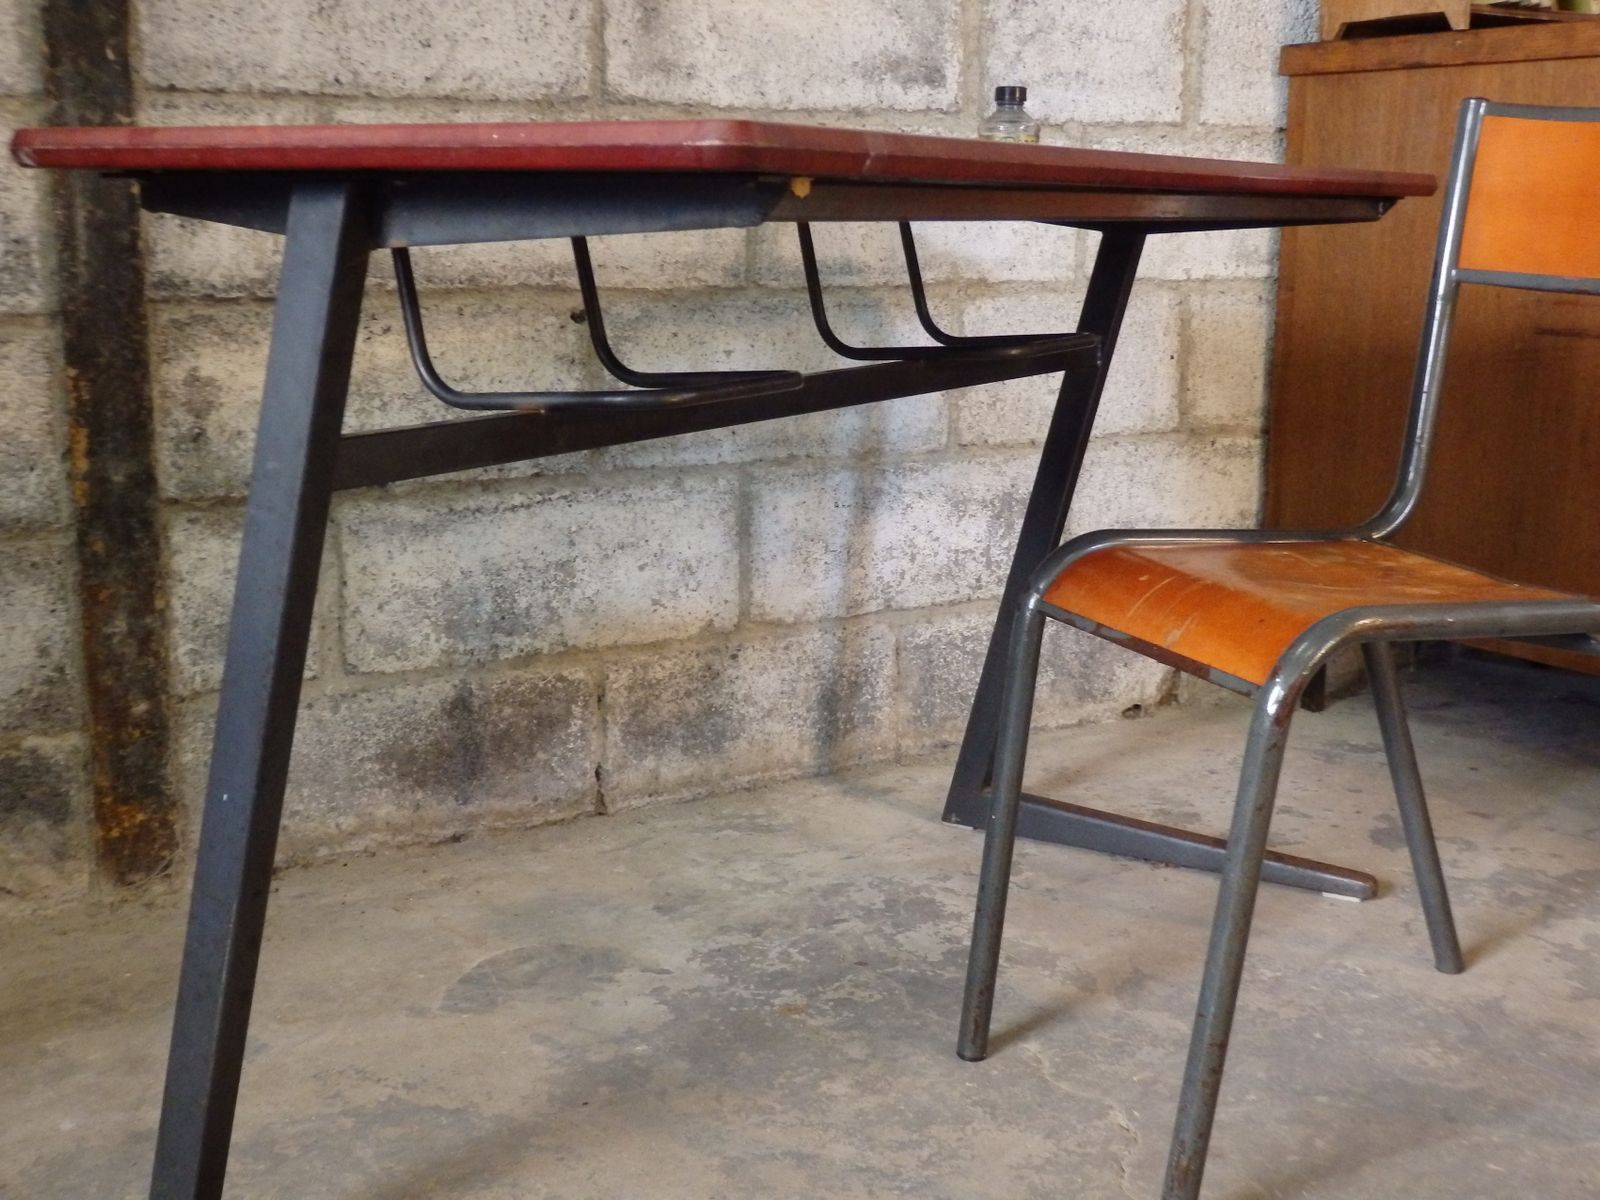 School desk and chair model 510 from mullca for sale at pamono for Chaise mullca 510